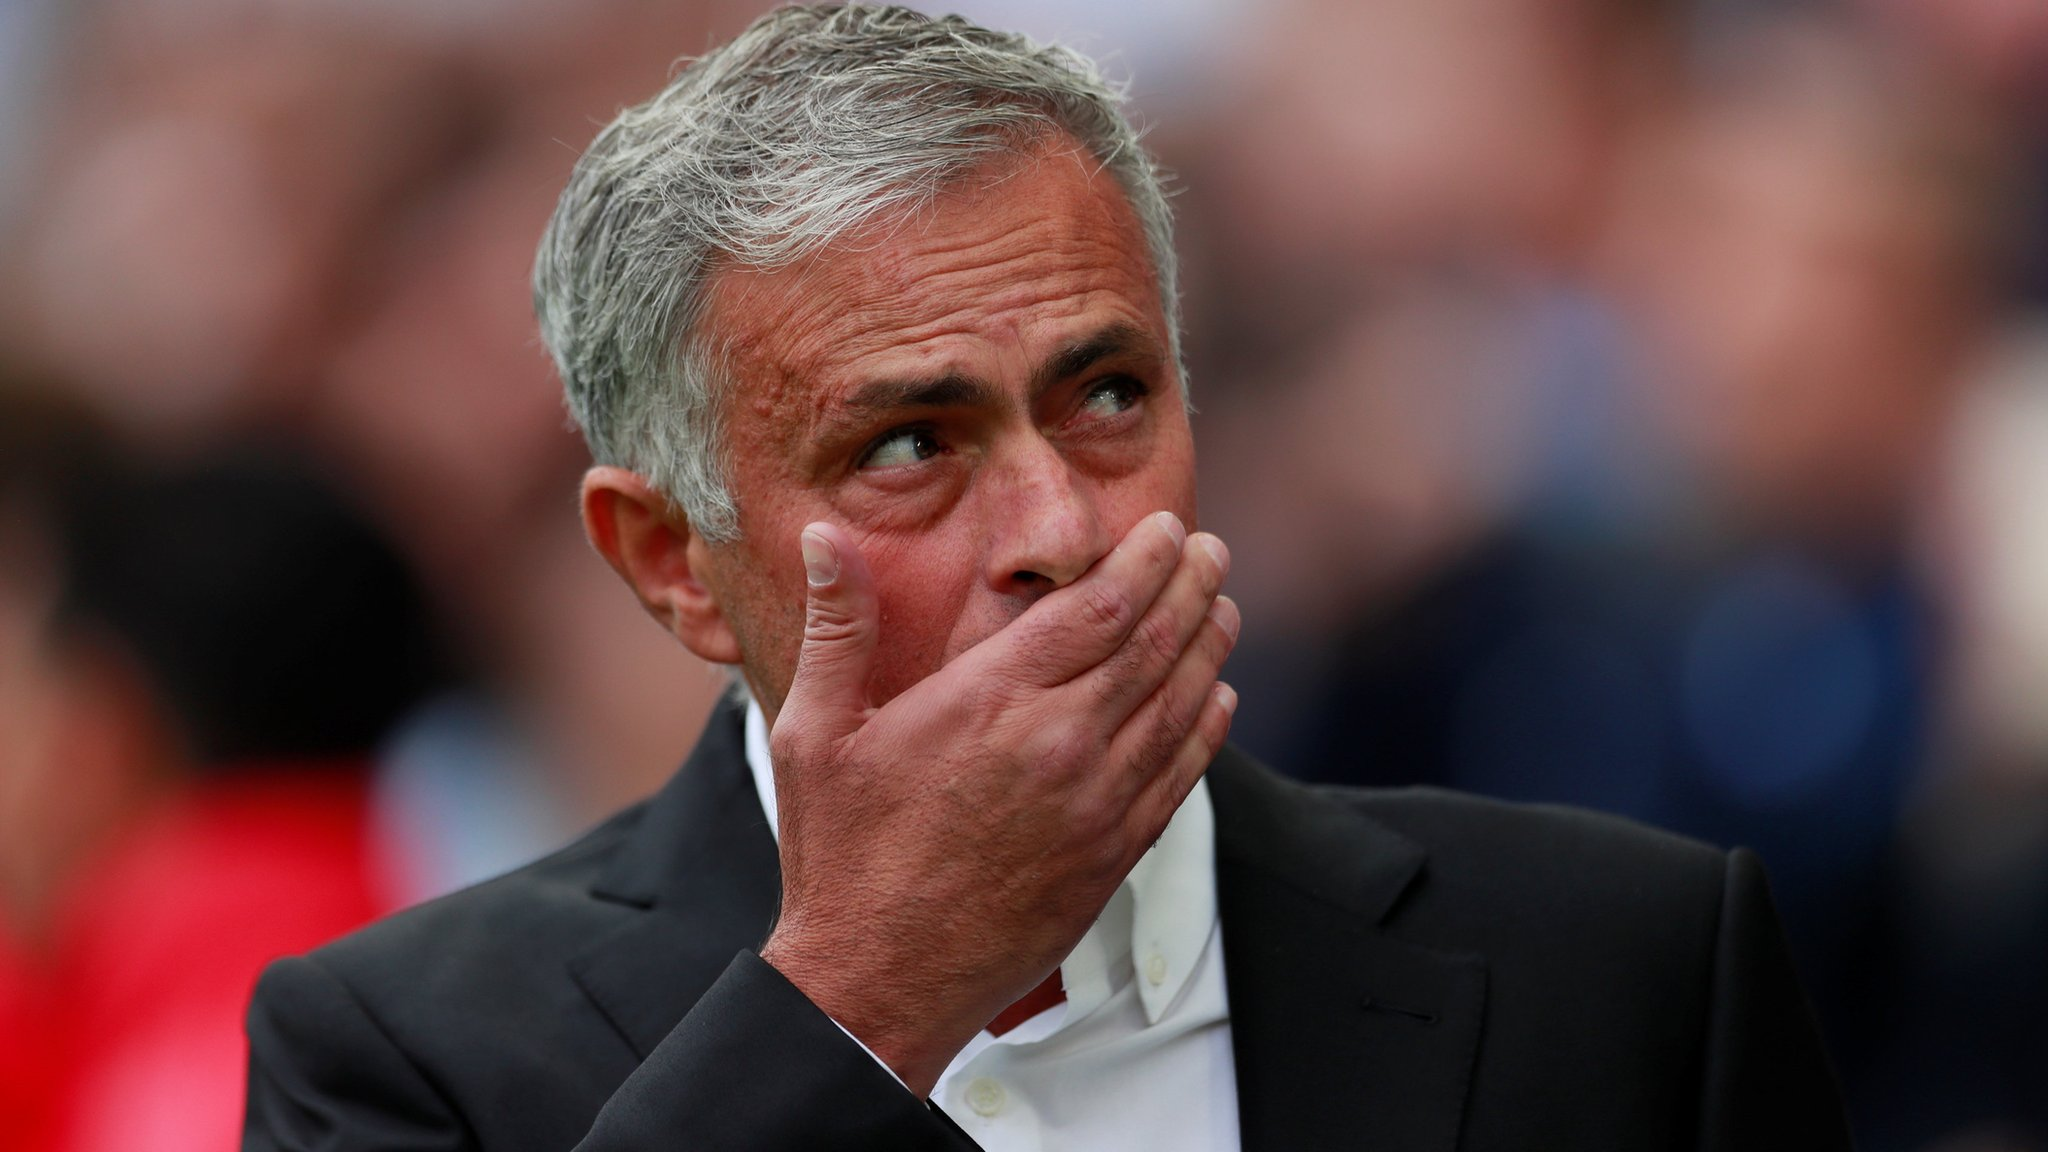 Is Mourinho's third-season syndrome a myth or is it happening again?